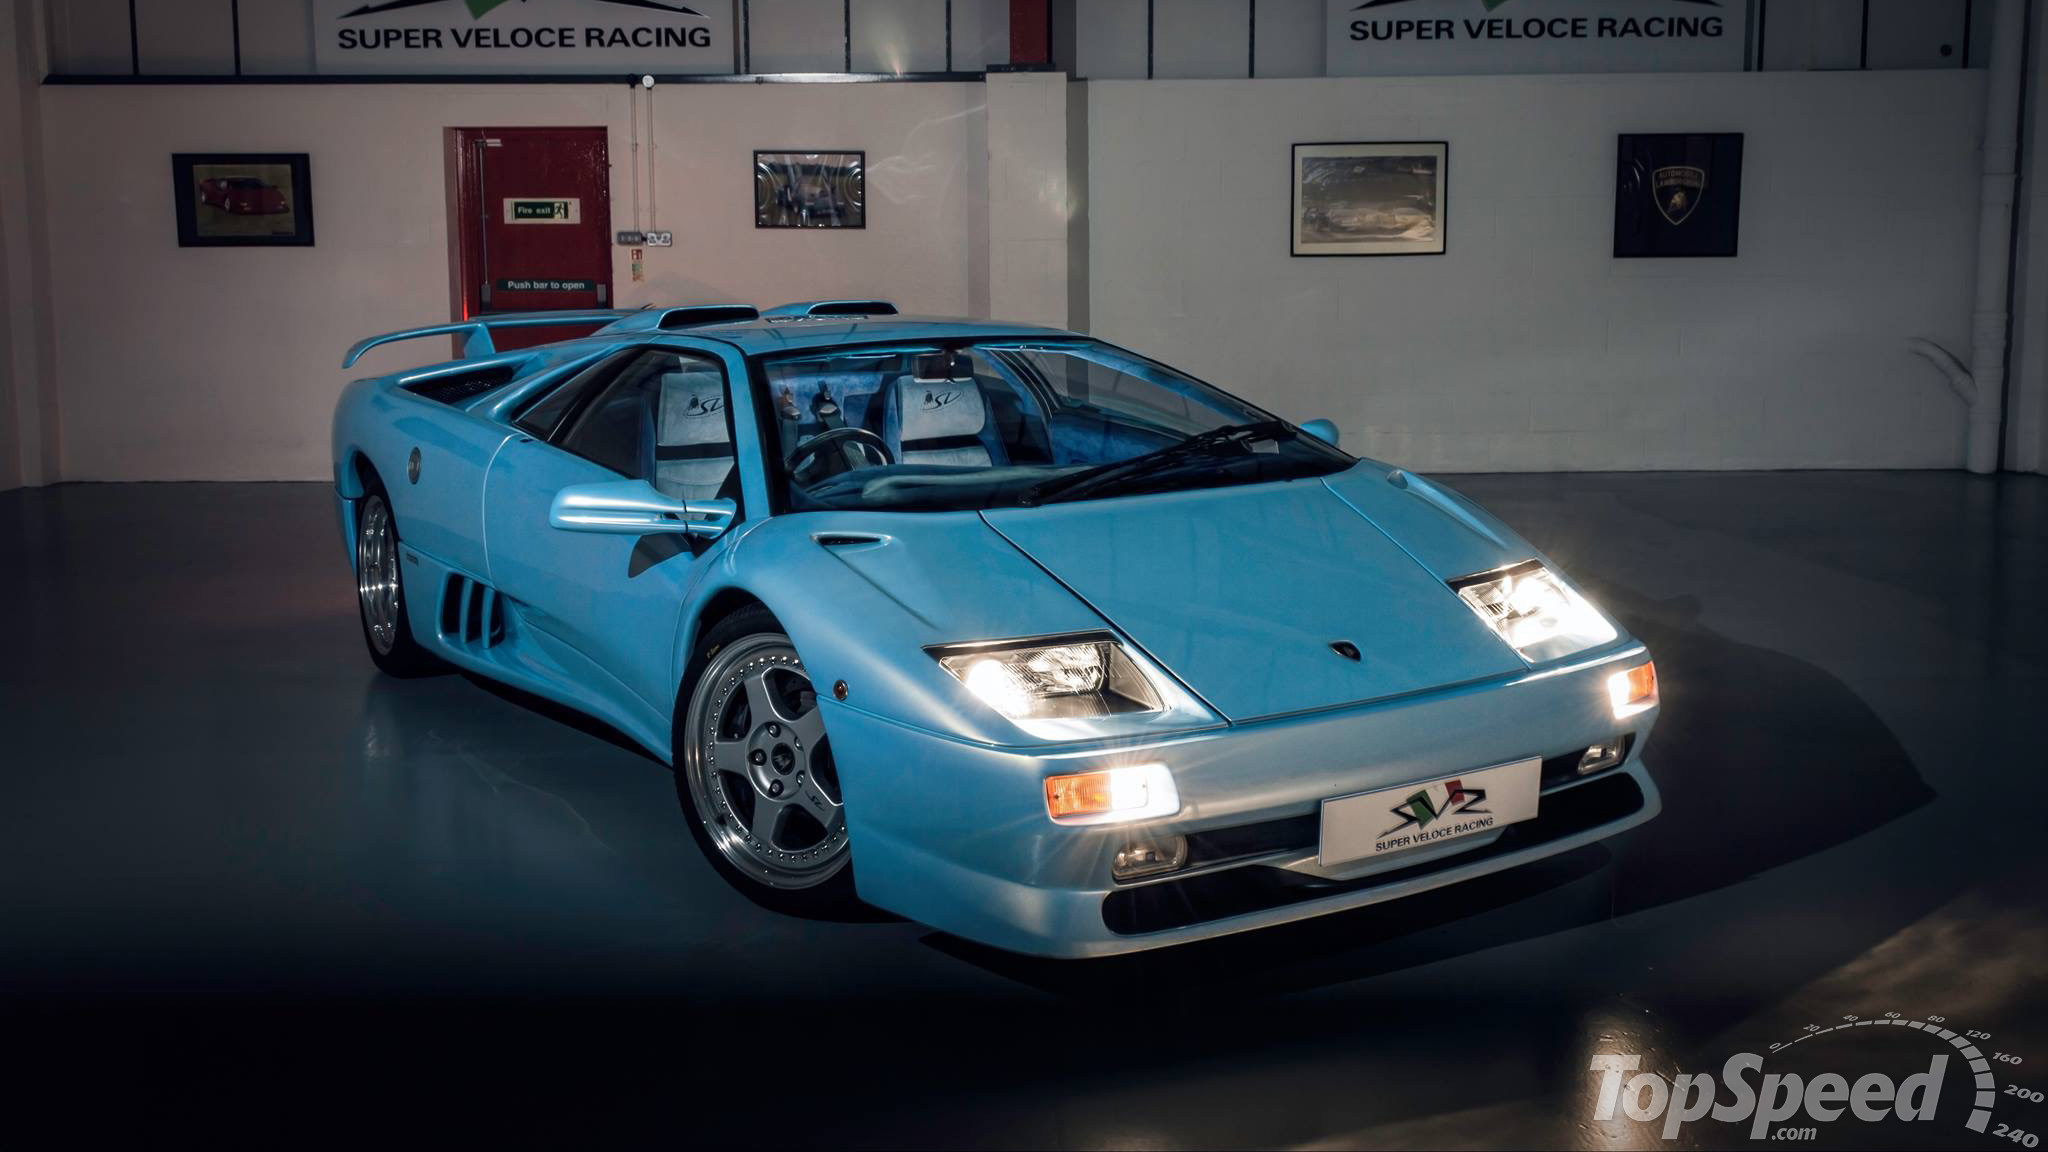 1995 Lamborghini Diablo SV By Super Veloce Racing Review   Top Speed. »